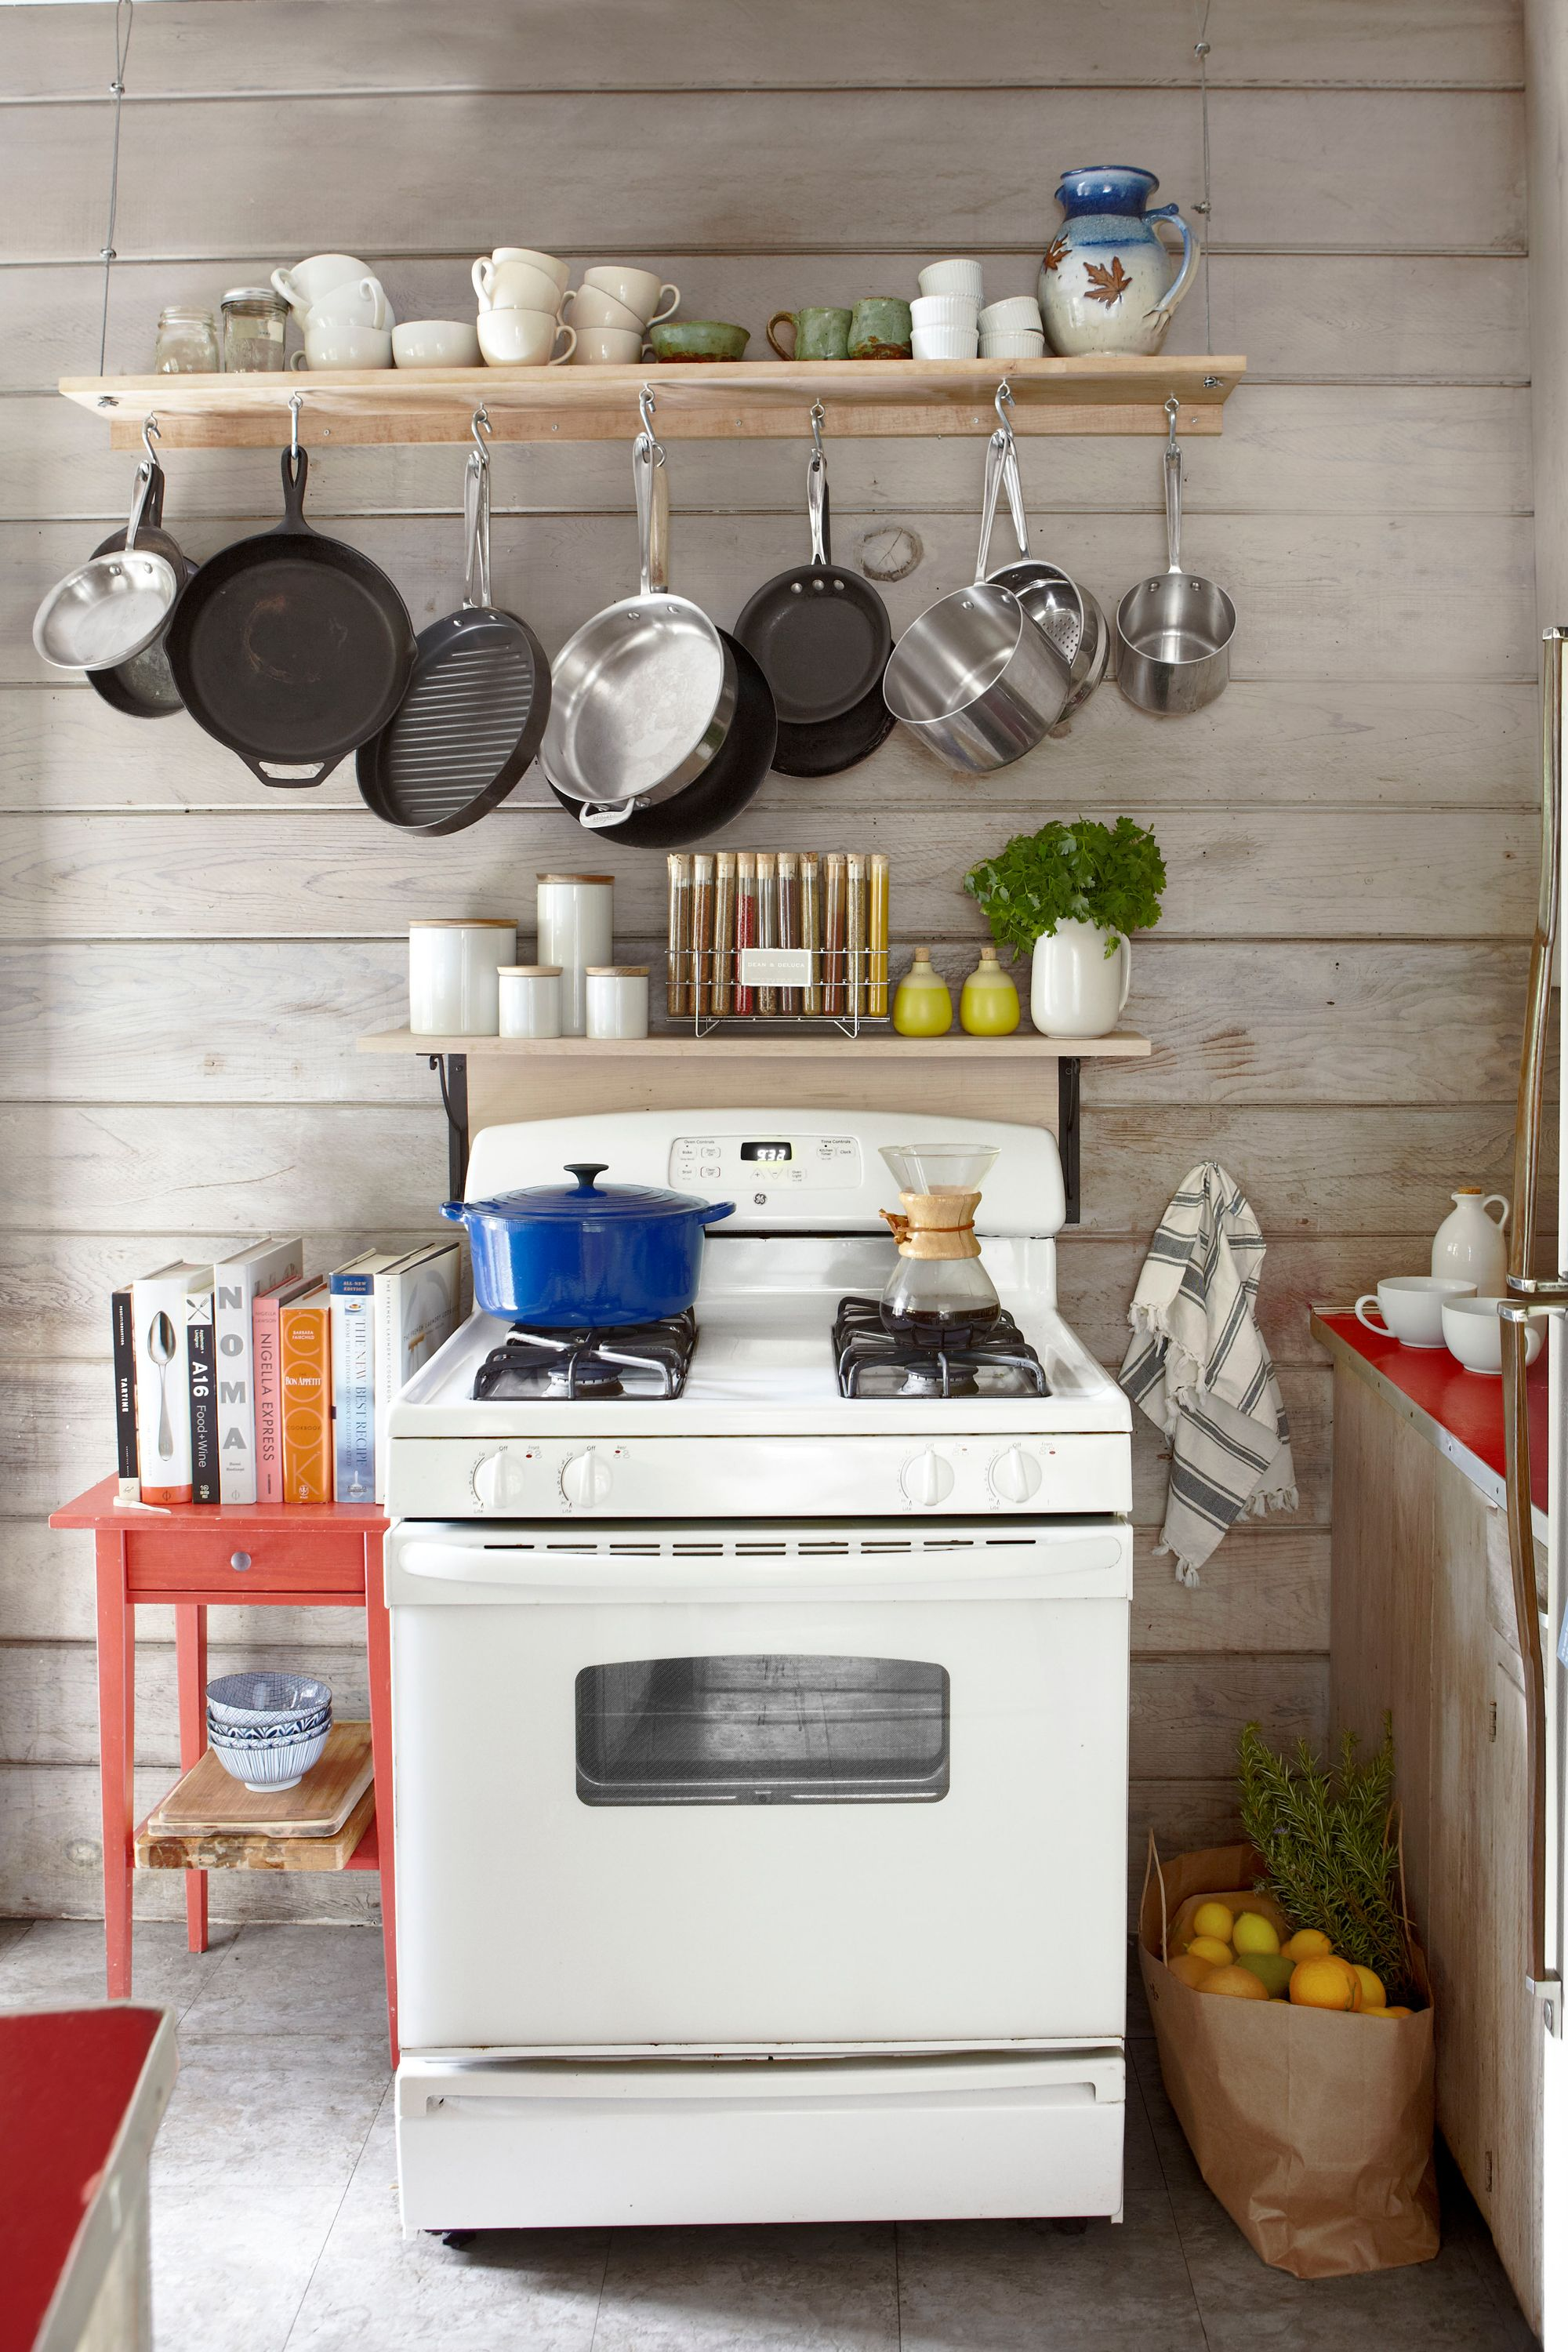 how to decorate your kitchen cost refinish cabinets 100 design ideas pictures of country decorating inspiration